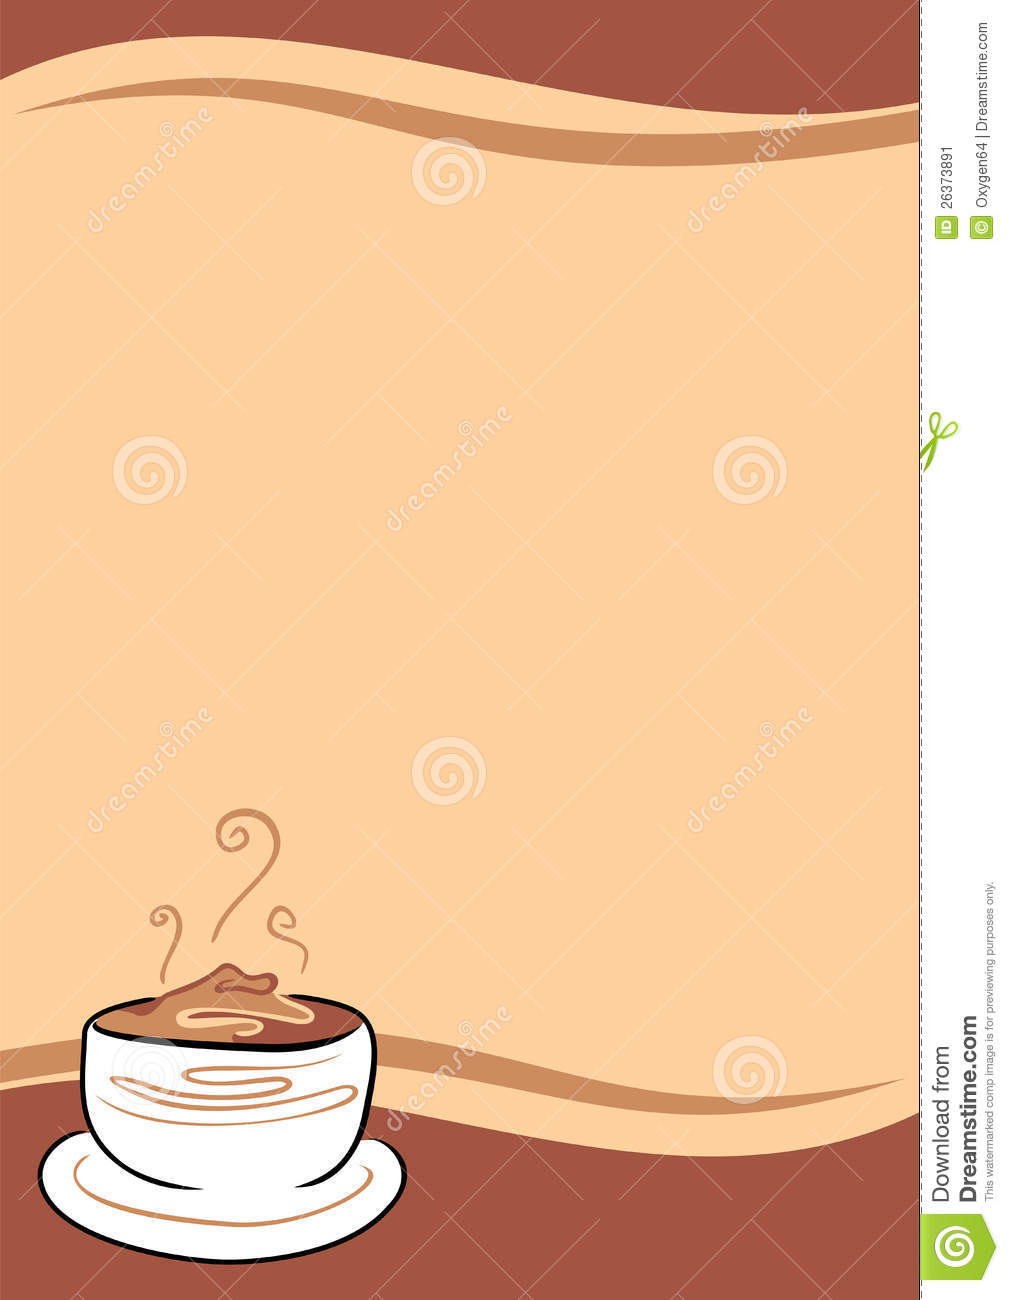 Coffee Background Stock Image - Image: 26373891